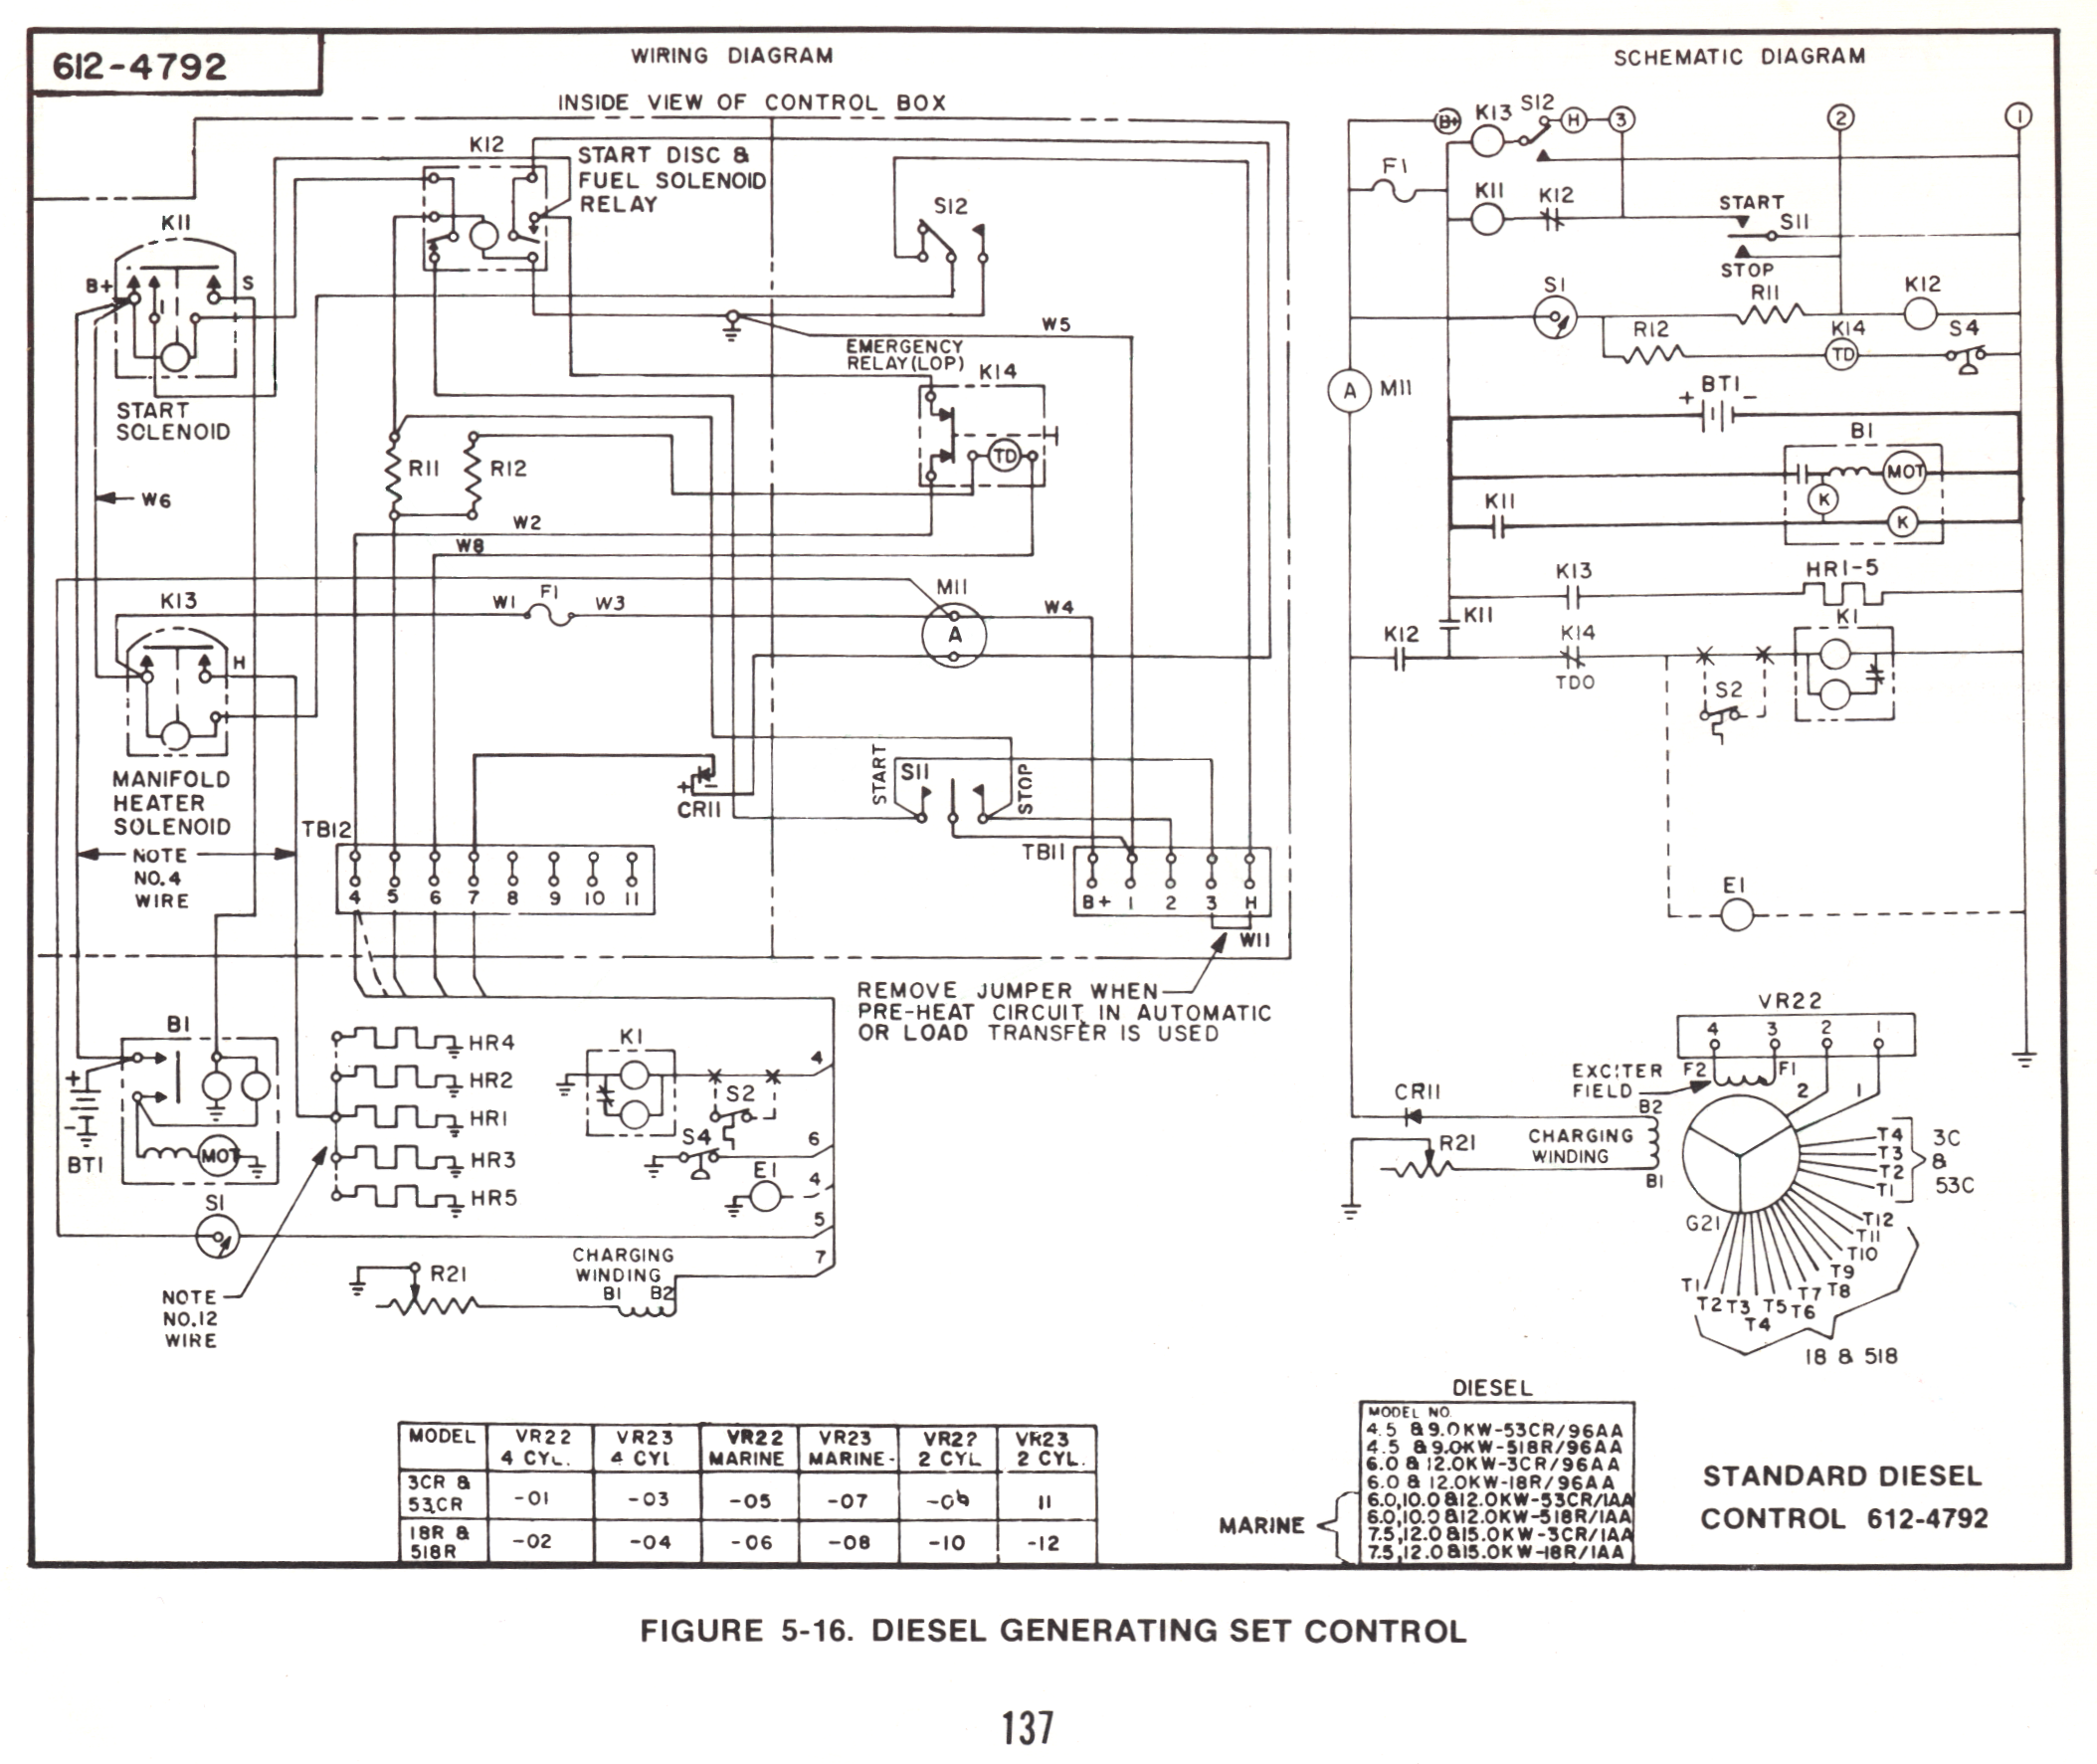 Onan_Diesel_Controls_612 4792_b onan stuff onan marquis 7000 wiring diagram at mifinder.co